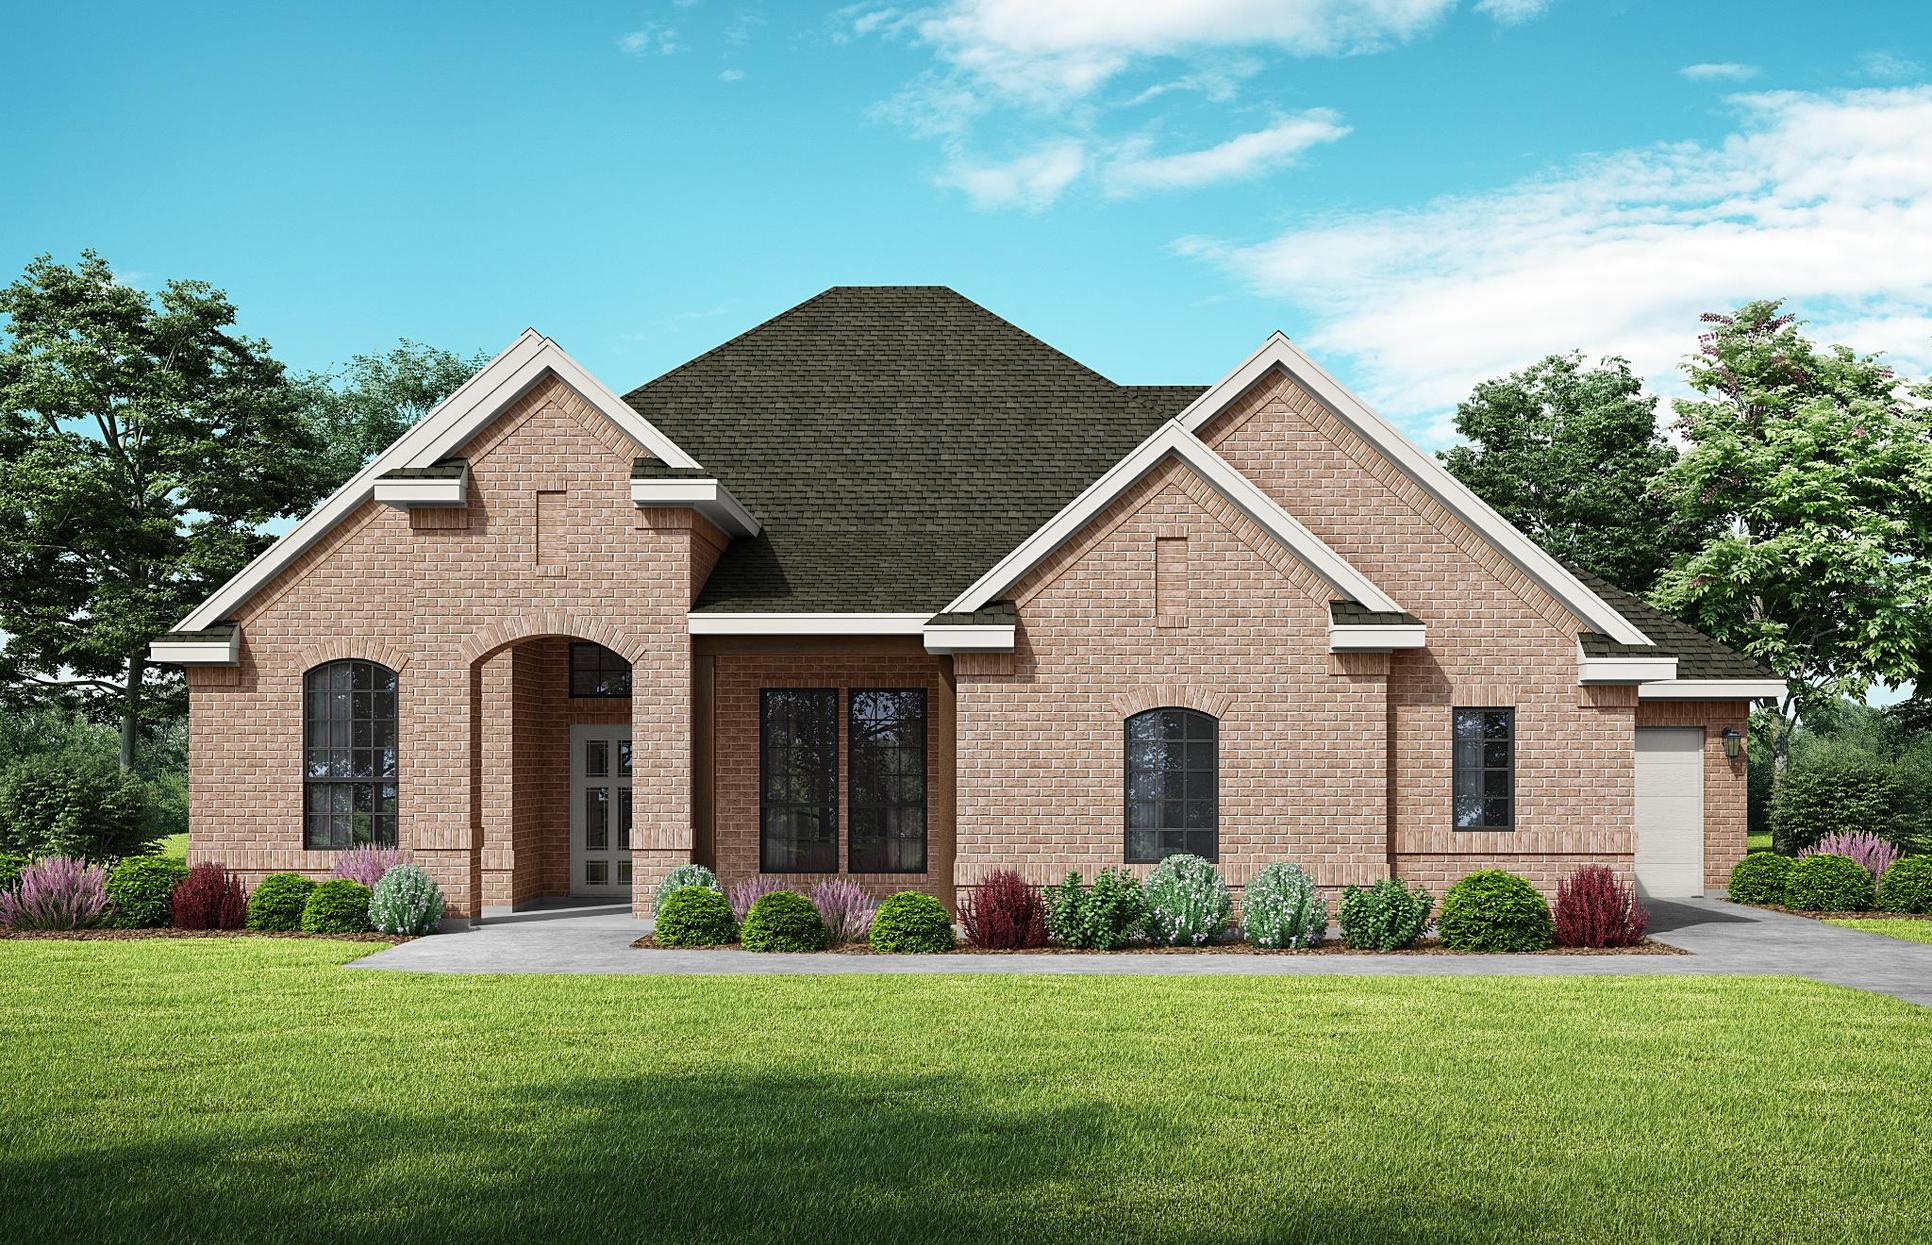 Laurel - Elevation A. Images are artist renderings and will differ from the actual home built.:Elevation A